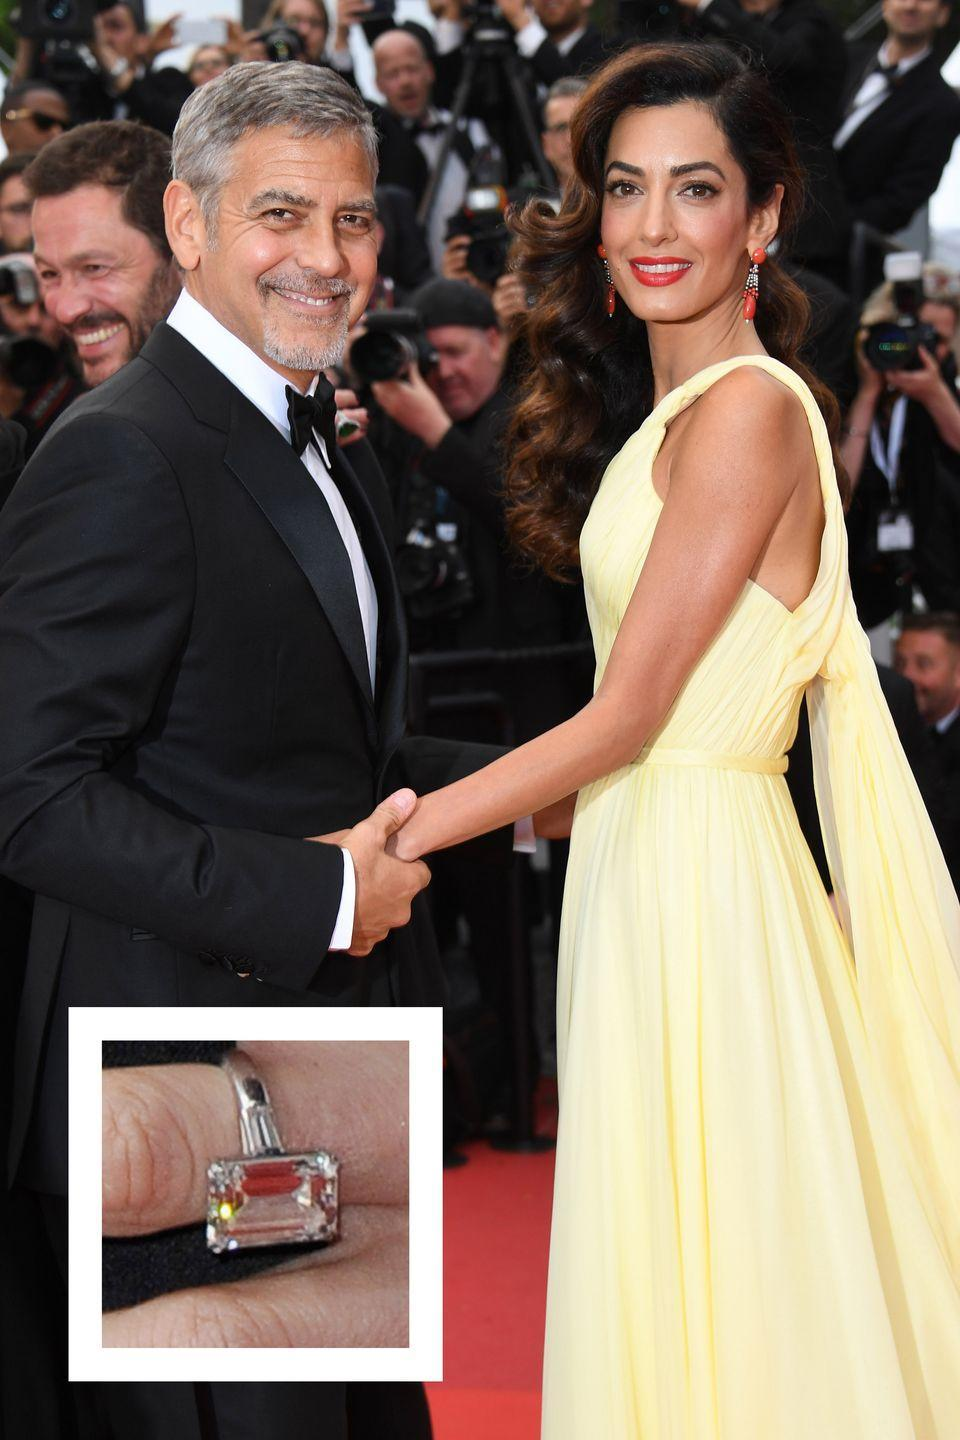 """<p>In April 2014, <a href=""""https://www.townandcountrymag.com/society/tradition/a10270315/george-amal-clooney-twins-photos/"""" rel=""""nofollow noopener"""" target=""""_blank"""" data-ylk=""""slk:longtime bachelor George Clooney"""" class=""""link rapid-noclick-resp"""">longtime bachelor George Clooney</a> proposed to <a href=""""https://www.townandcountrymag.com/society/money-and-power/a9984/amal-clooney-nadia-murad-1843-interview/"""" rel=""""nofollow noopener"""" target=""""_blank"""" data-ylk=""""slk:human-rights lawyer Amal Alamuddin"""" class=""""link rapid-noclick-resp"""">human-rights lawyer Amal Alamuddin </a>with <a href=""""https://www.townandcountrymag.com/style/fashion-trends/g2852/amal-clooney-best-looks/"""" rel=""""nofollow noopener"""" target=""""_blank"""" data-ylk=""""slk:a dazzling diamond ring."""" class=""""link rapid-noclick-resp"""">a dazzling diamond ring.</a> The ethically mined, seven carat emerald-cut center stone is set in platinum with two tapered baguettes on each side, <a href=""""http://people.com/celebrity/amal-alamuddins-engagement-ring-from-george-clooney-see-exclusive-photos/"""" rel=""""nofollow noopener"""" target=""""_blank"""" data-ylk=""""slk:People reports."""" class=""""link rapid-noclick-resp""""><em>People</em> reports.</a> The ring is <a href=""""http://www.eonline.com/news/537304/amal-alamuddin-s-750-000-engagement-ring-from-george-clooney-experts-weigh-in"""" rel=""""nofollow noopener"""" target=""""_blank"""" data-ylk=""""slk:estimated to cost"""" class=""""link rapid-noclick-resp"""">estimated to cost</a> $750,000.</p>"""